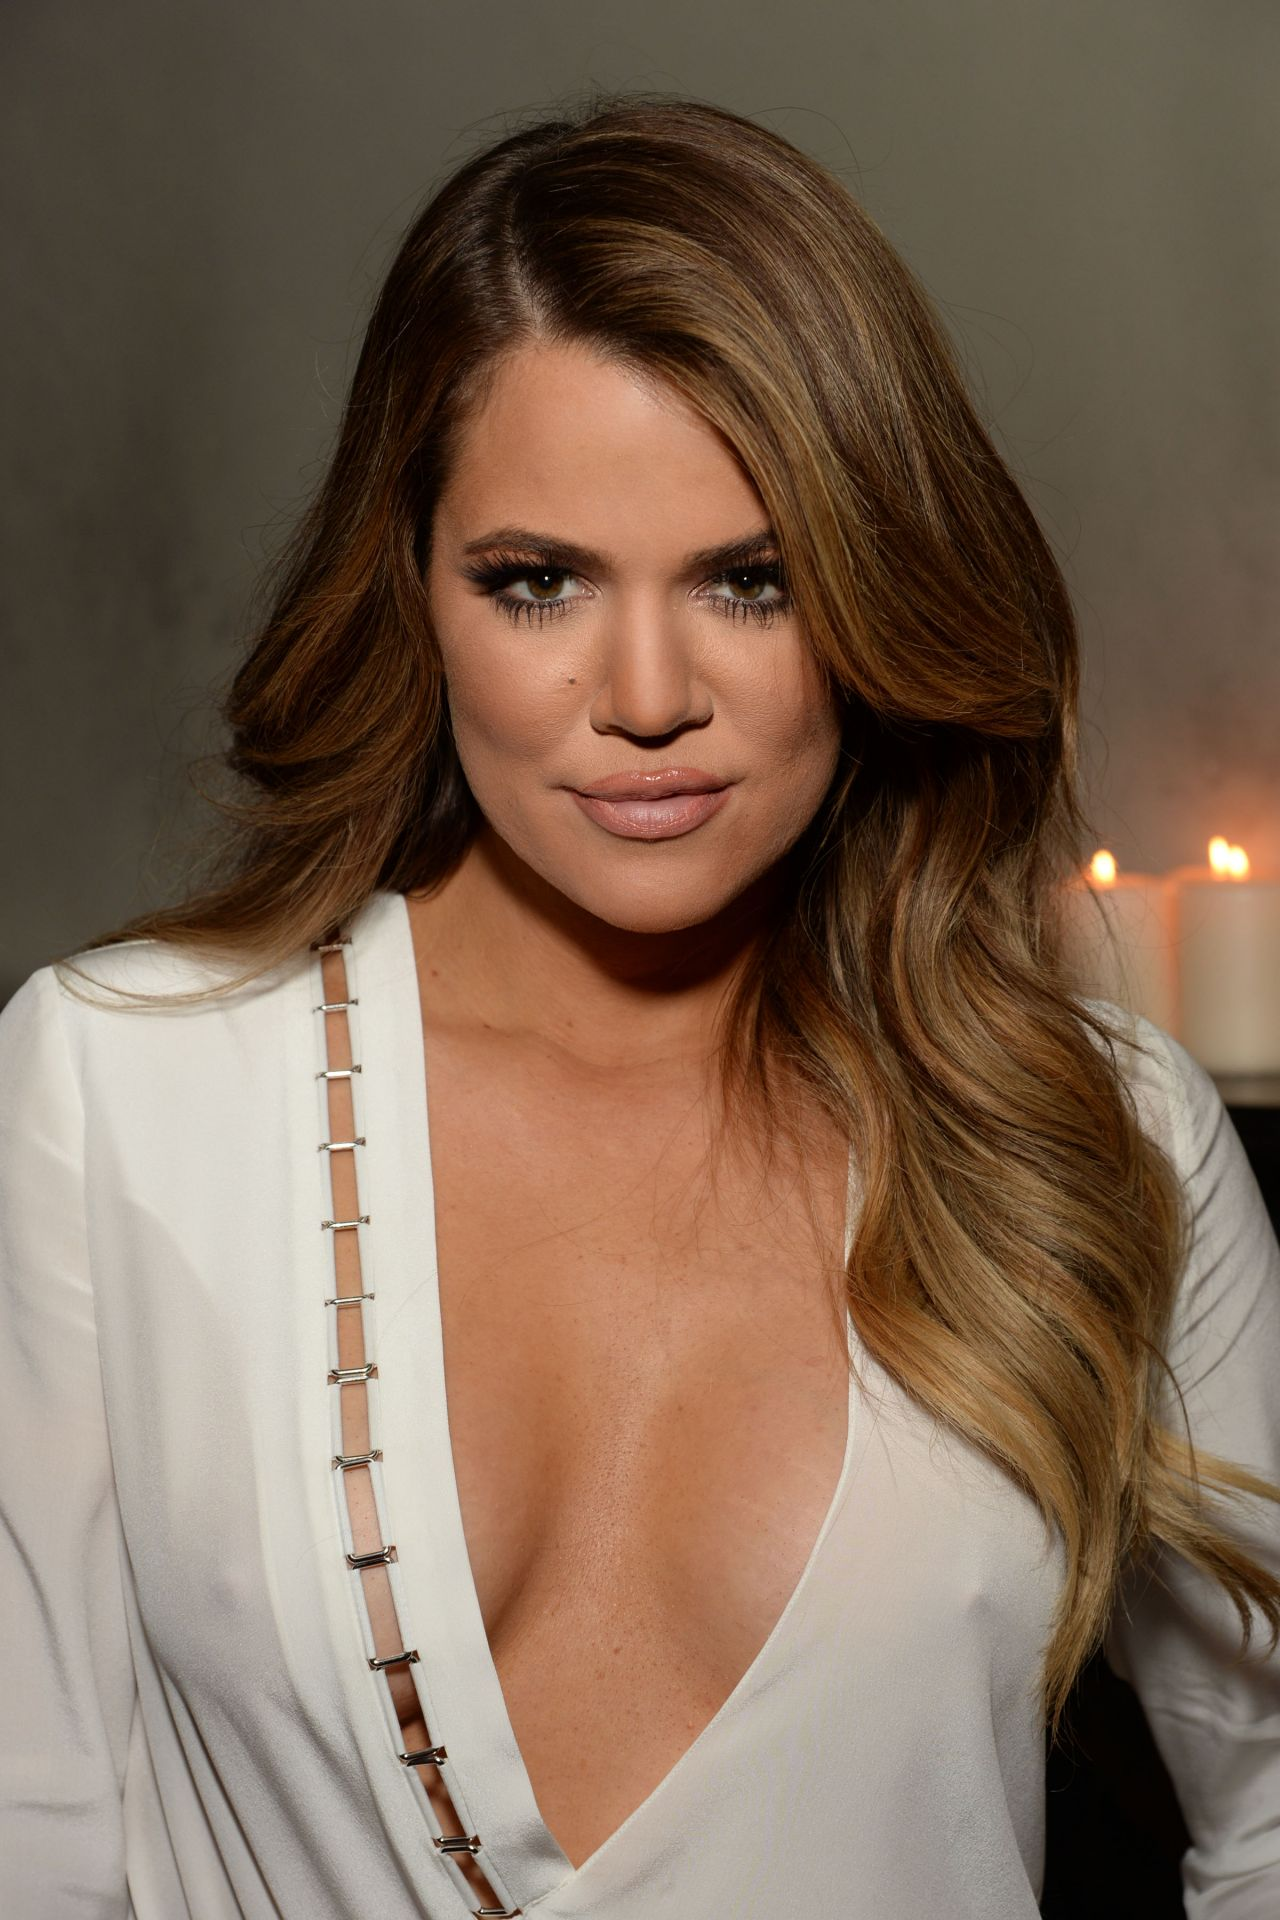 khloe kardashian - photo #30